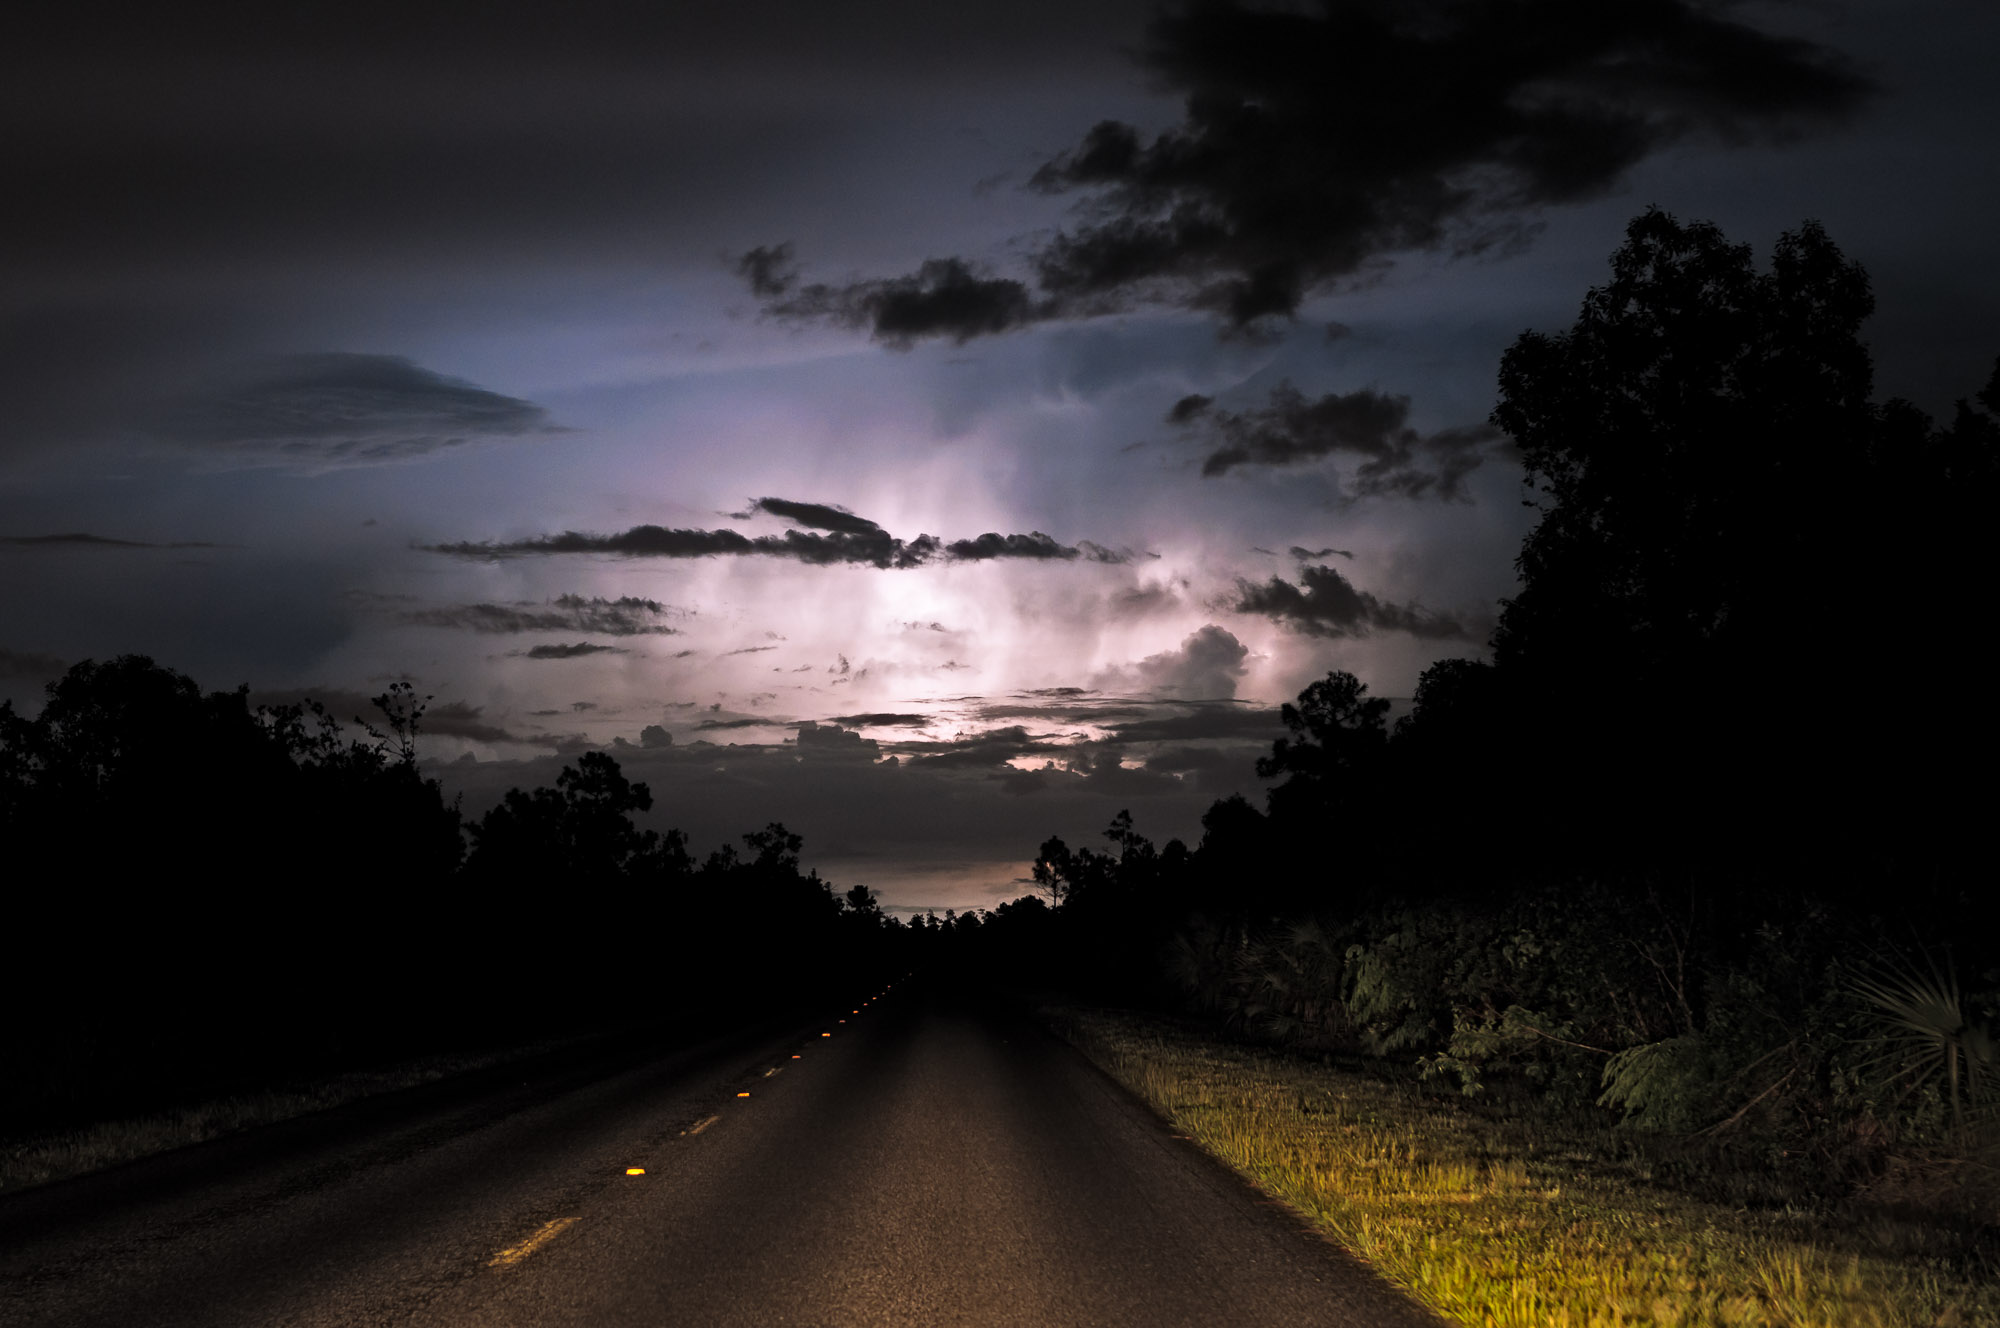 Lightning and park road - Everglades National Park, Florida